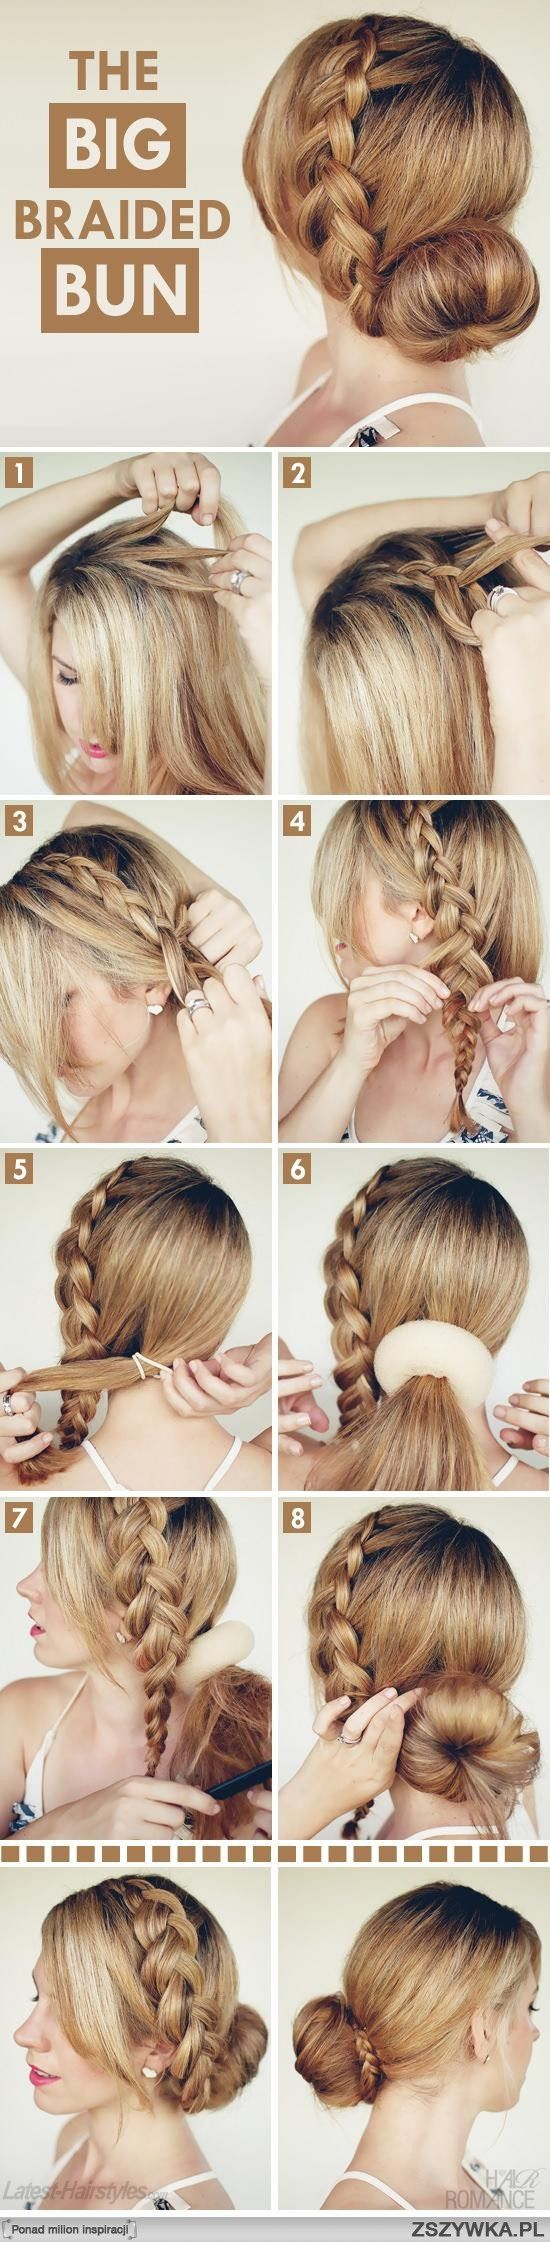 Big Braided Bun for the long-haired people